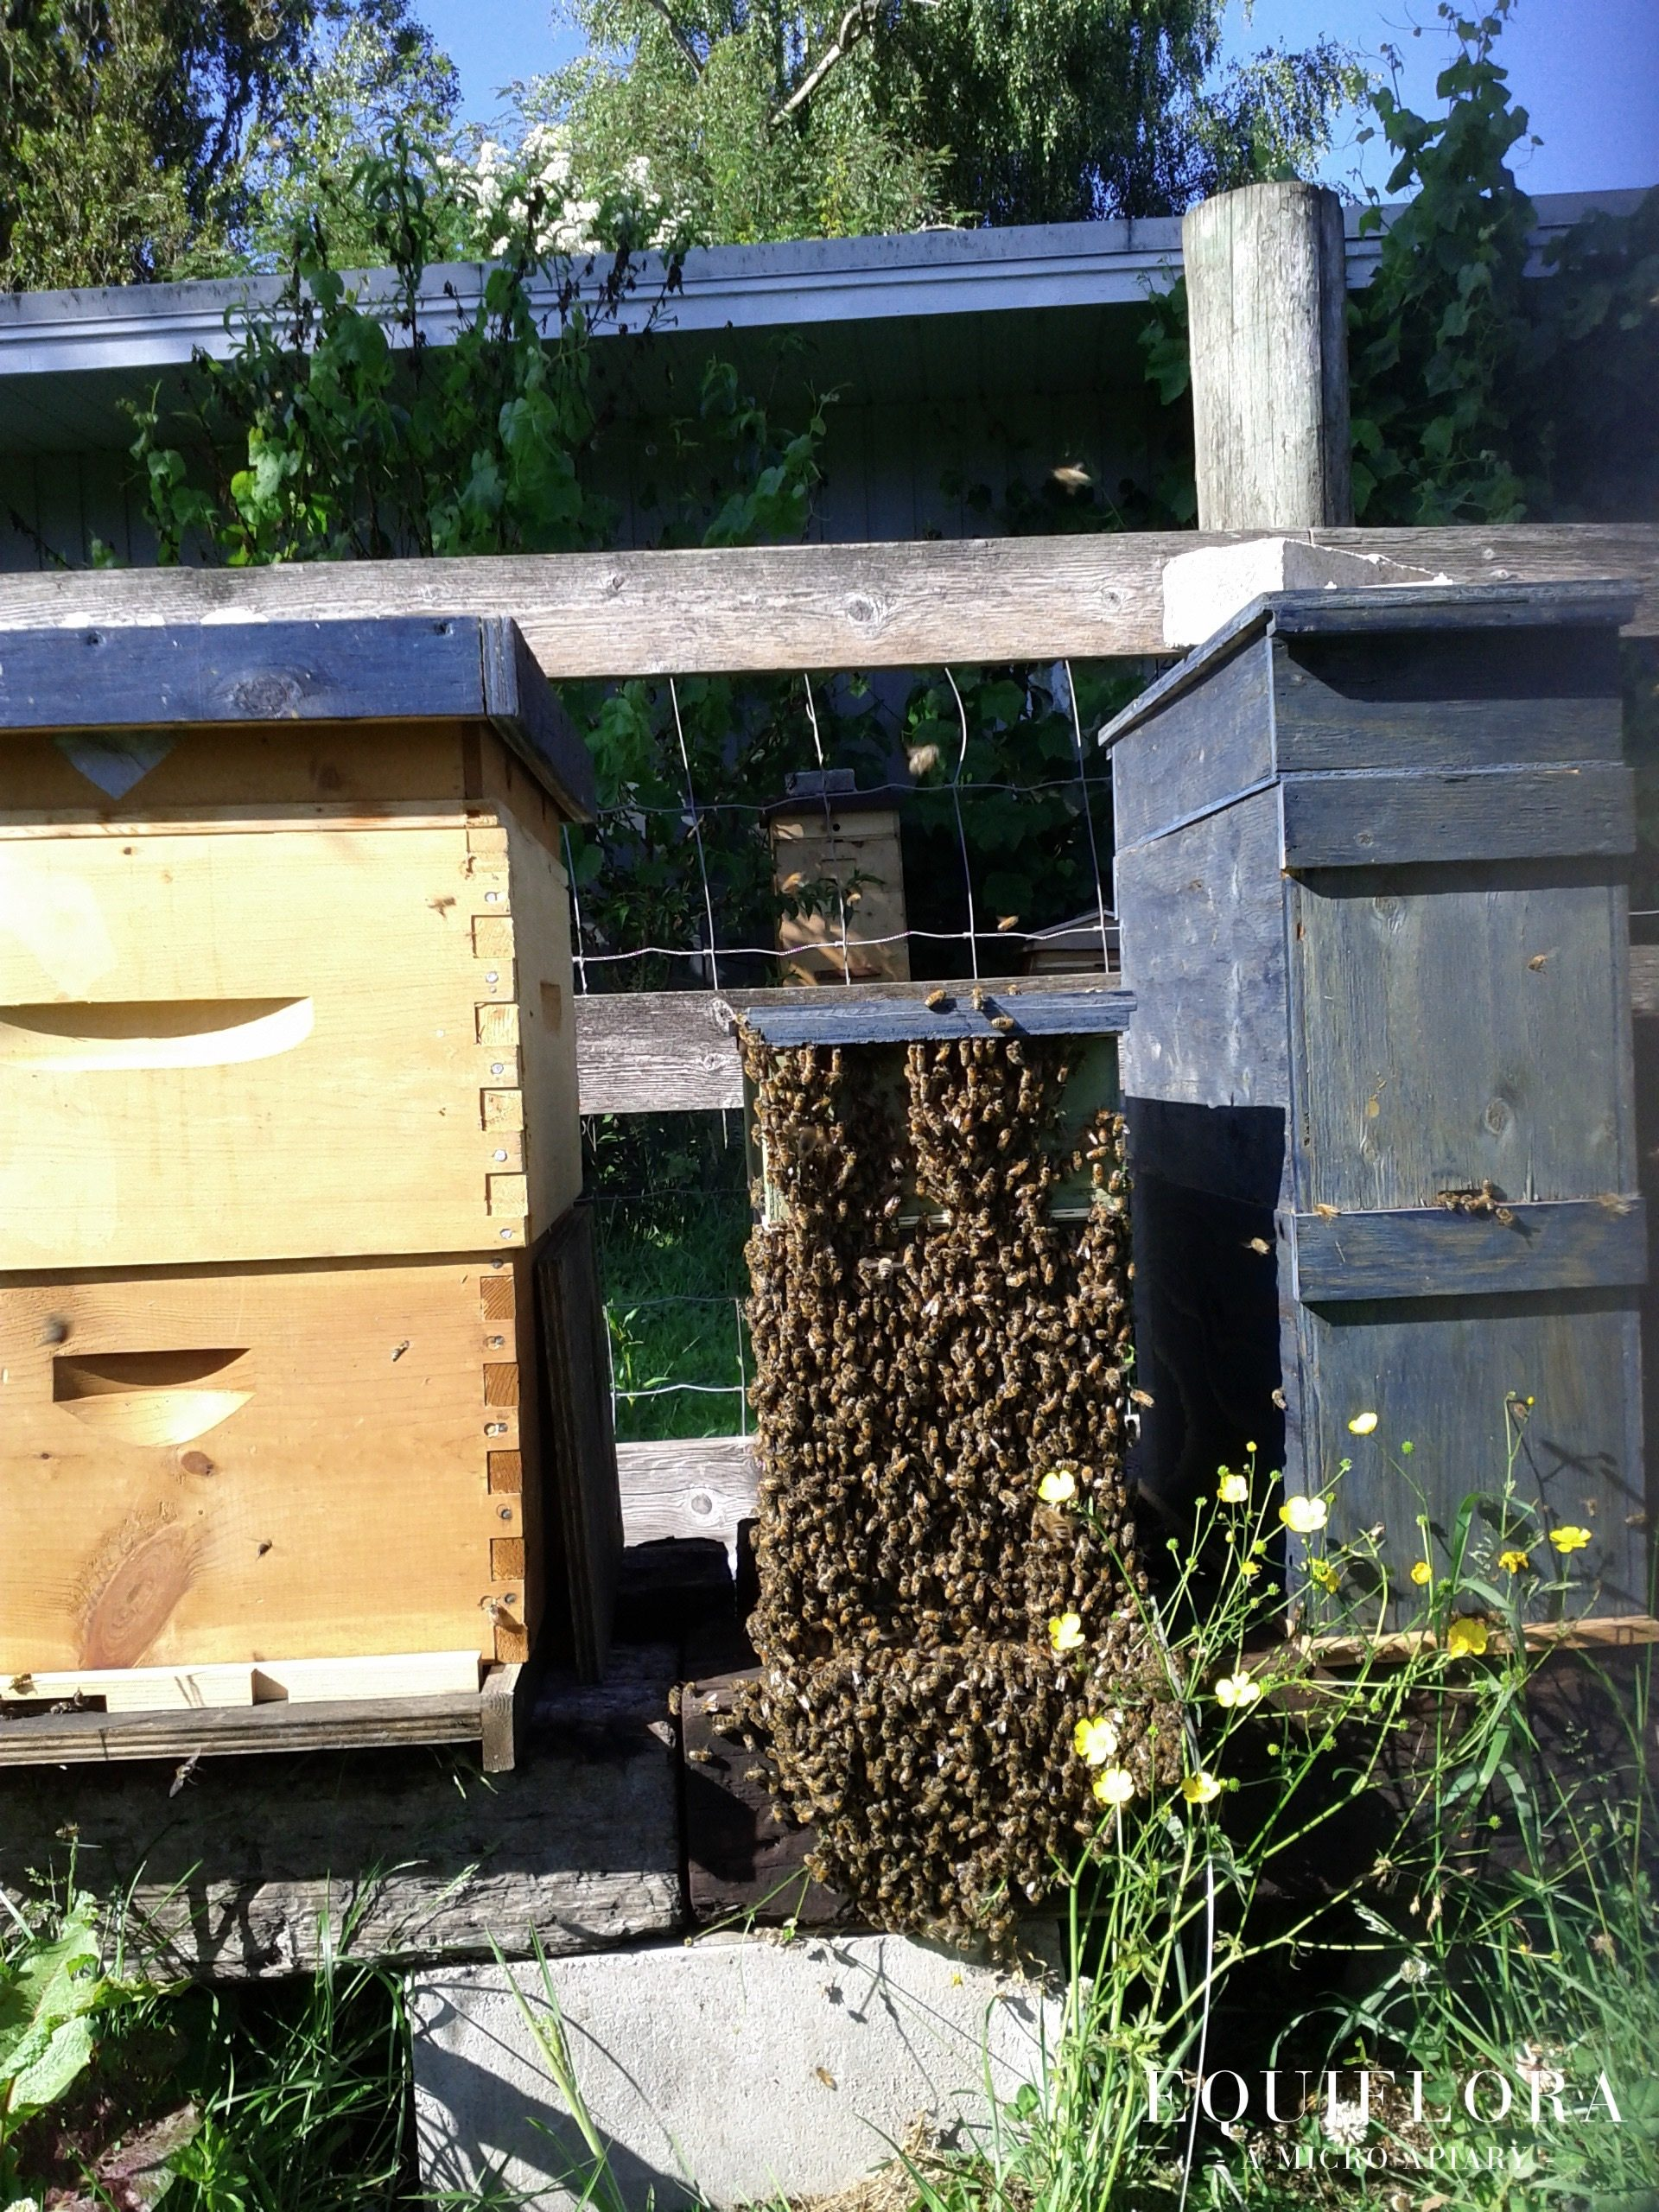 This nuc colony has grown too big for its home.